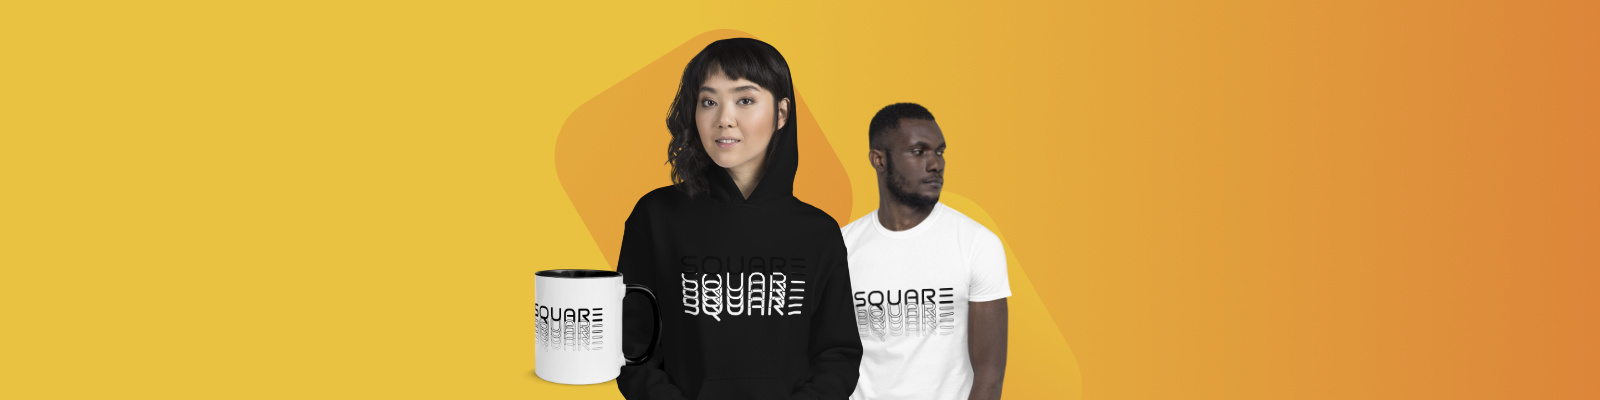 Square Store